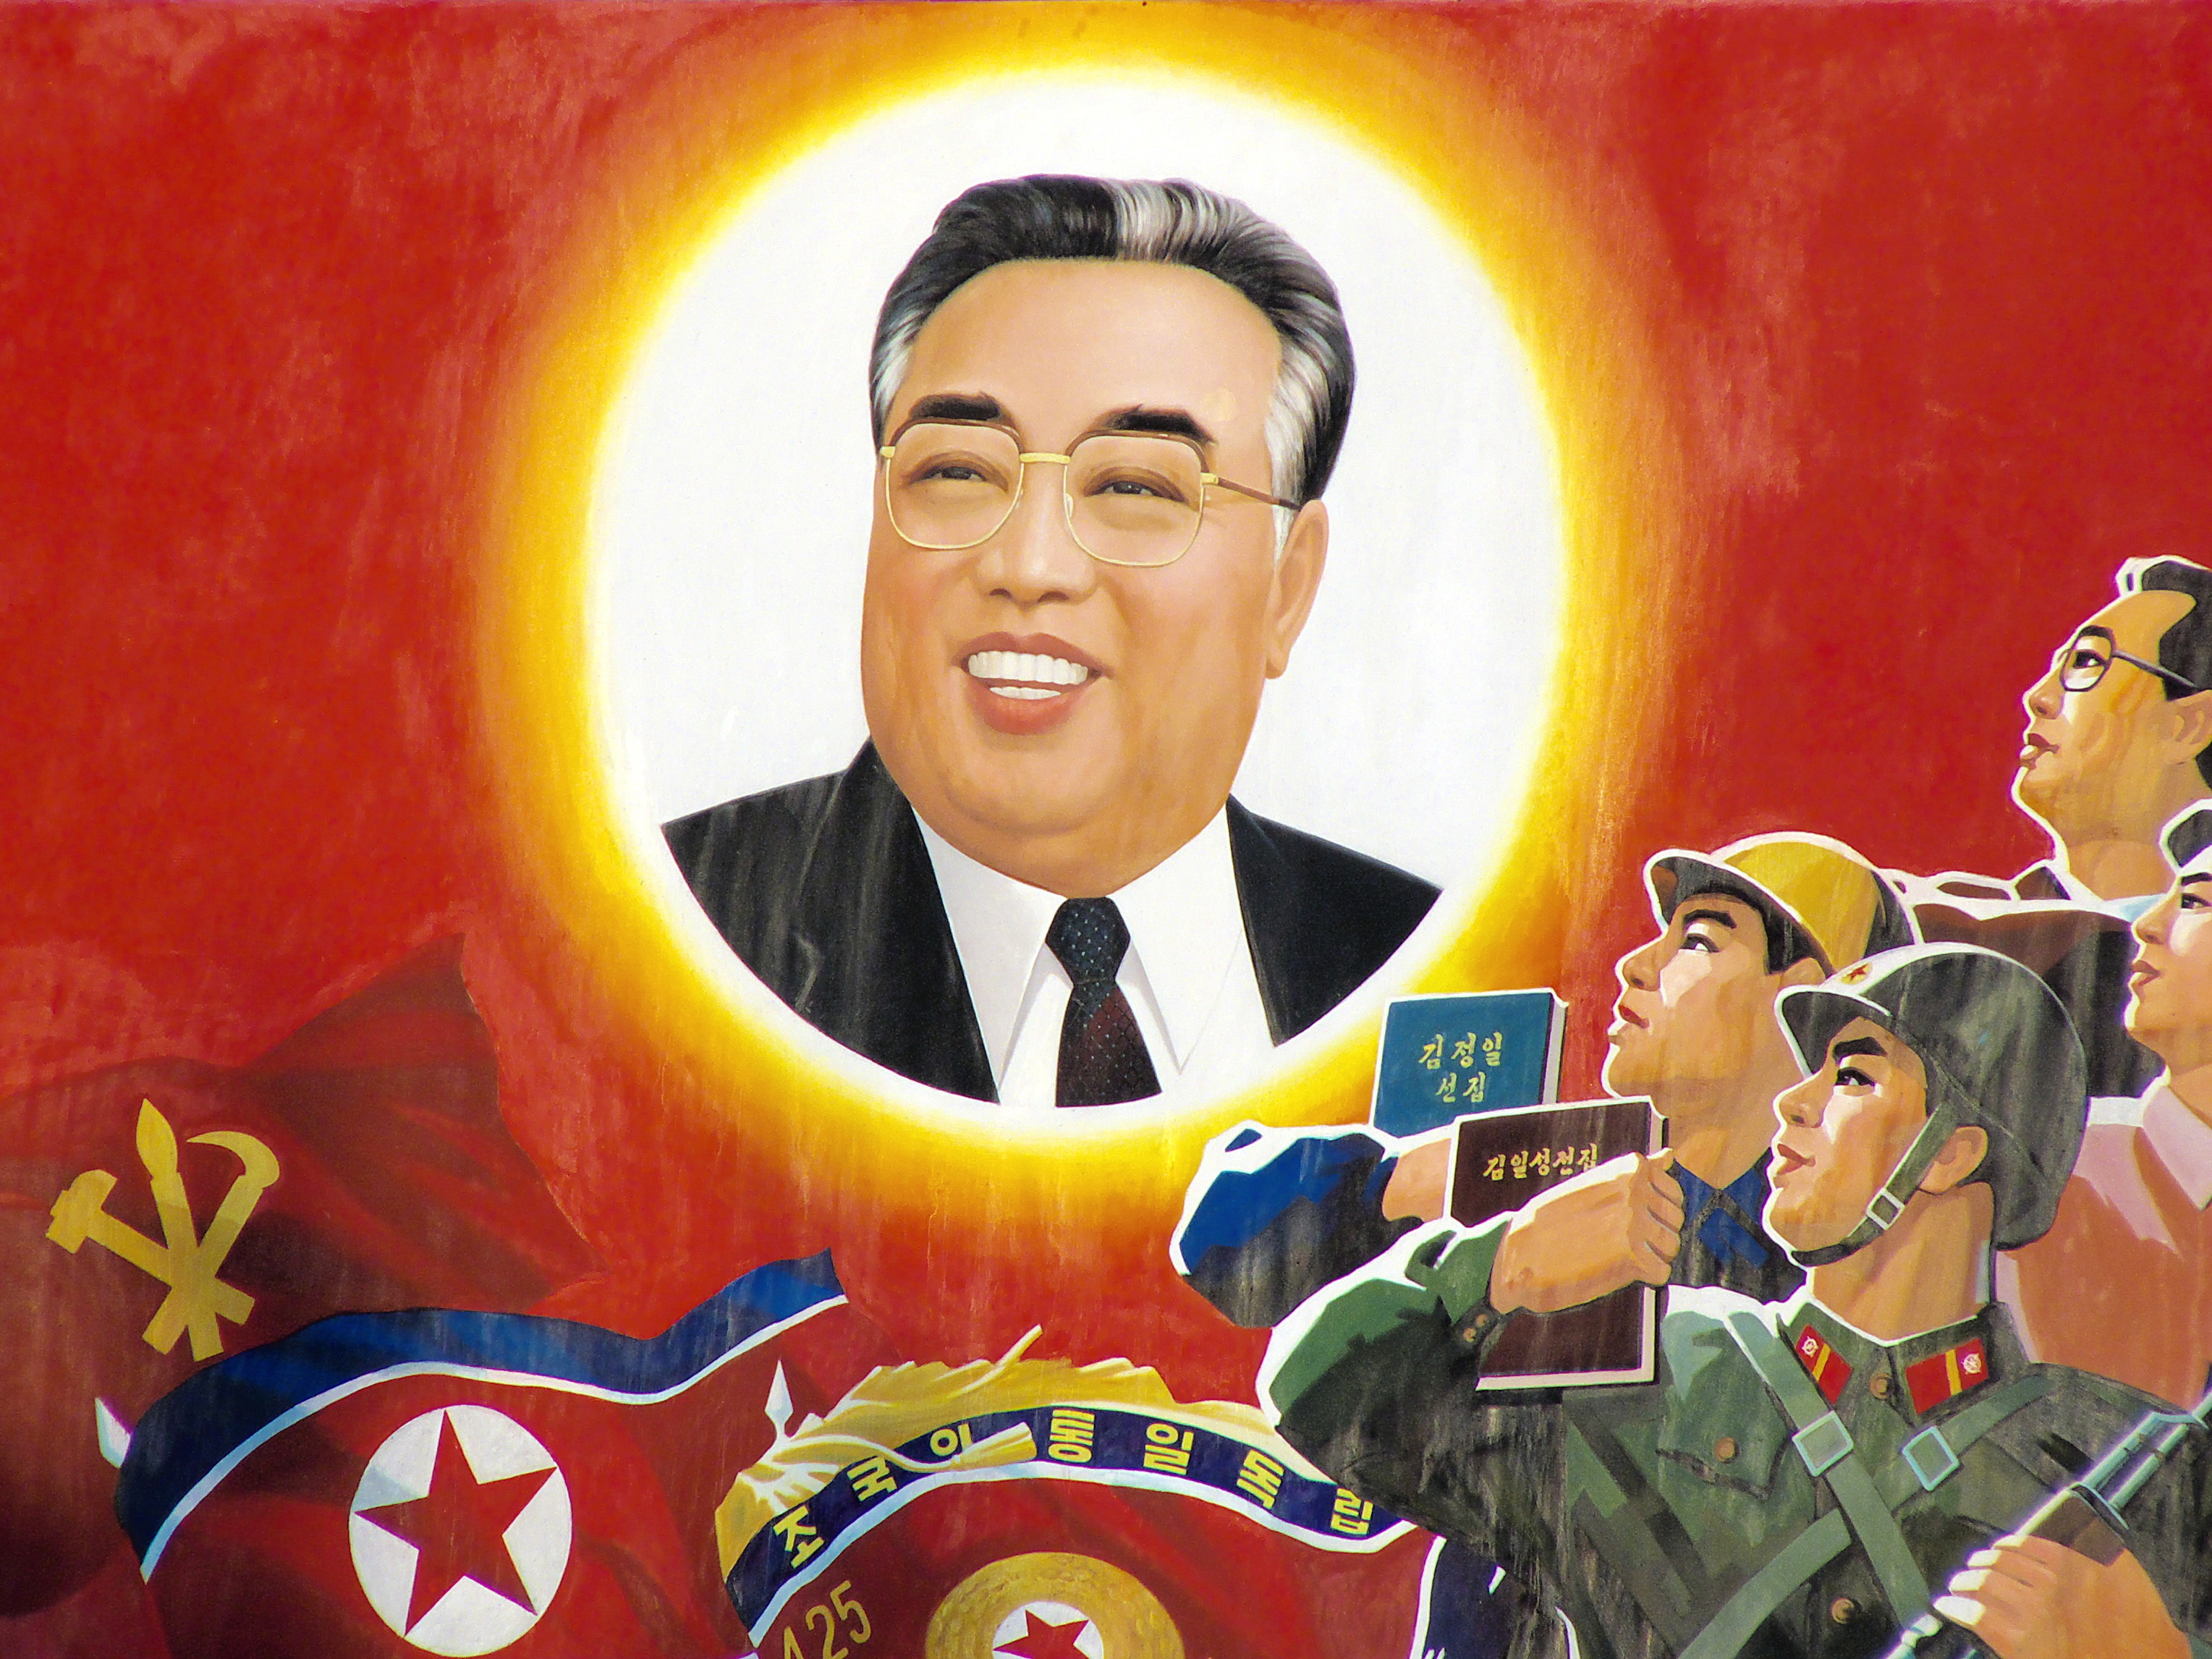 a comparison of george orwells animal farm to the rule of kim jong un in north korea